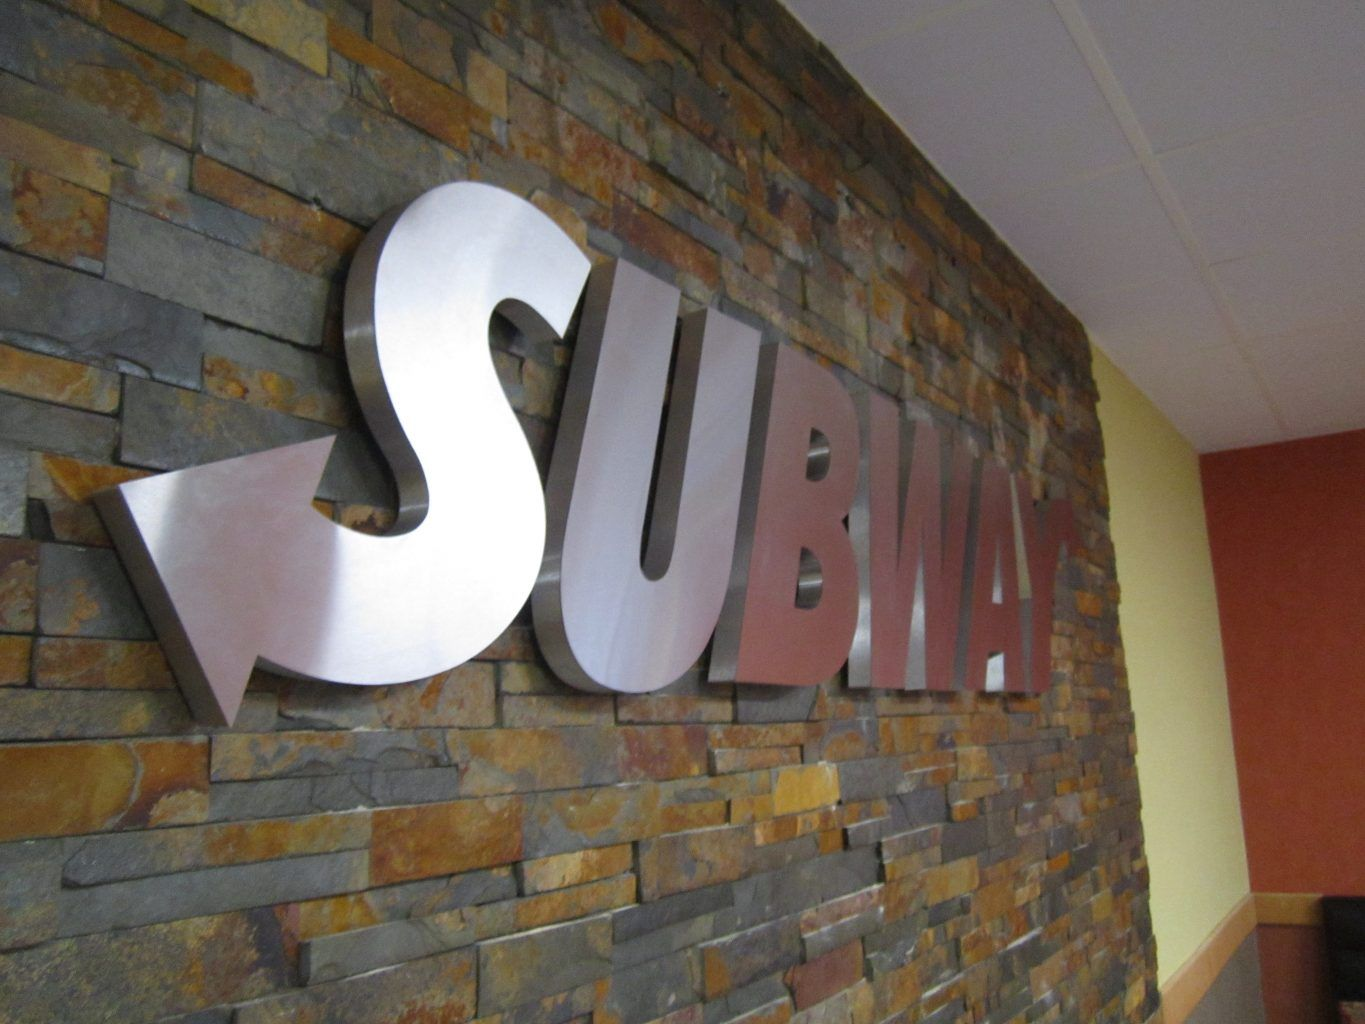 BUILT UP SUBWAY STAINLESS STEEL SIGN